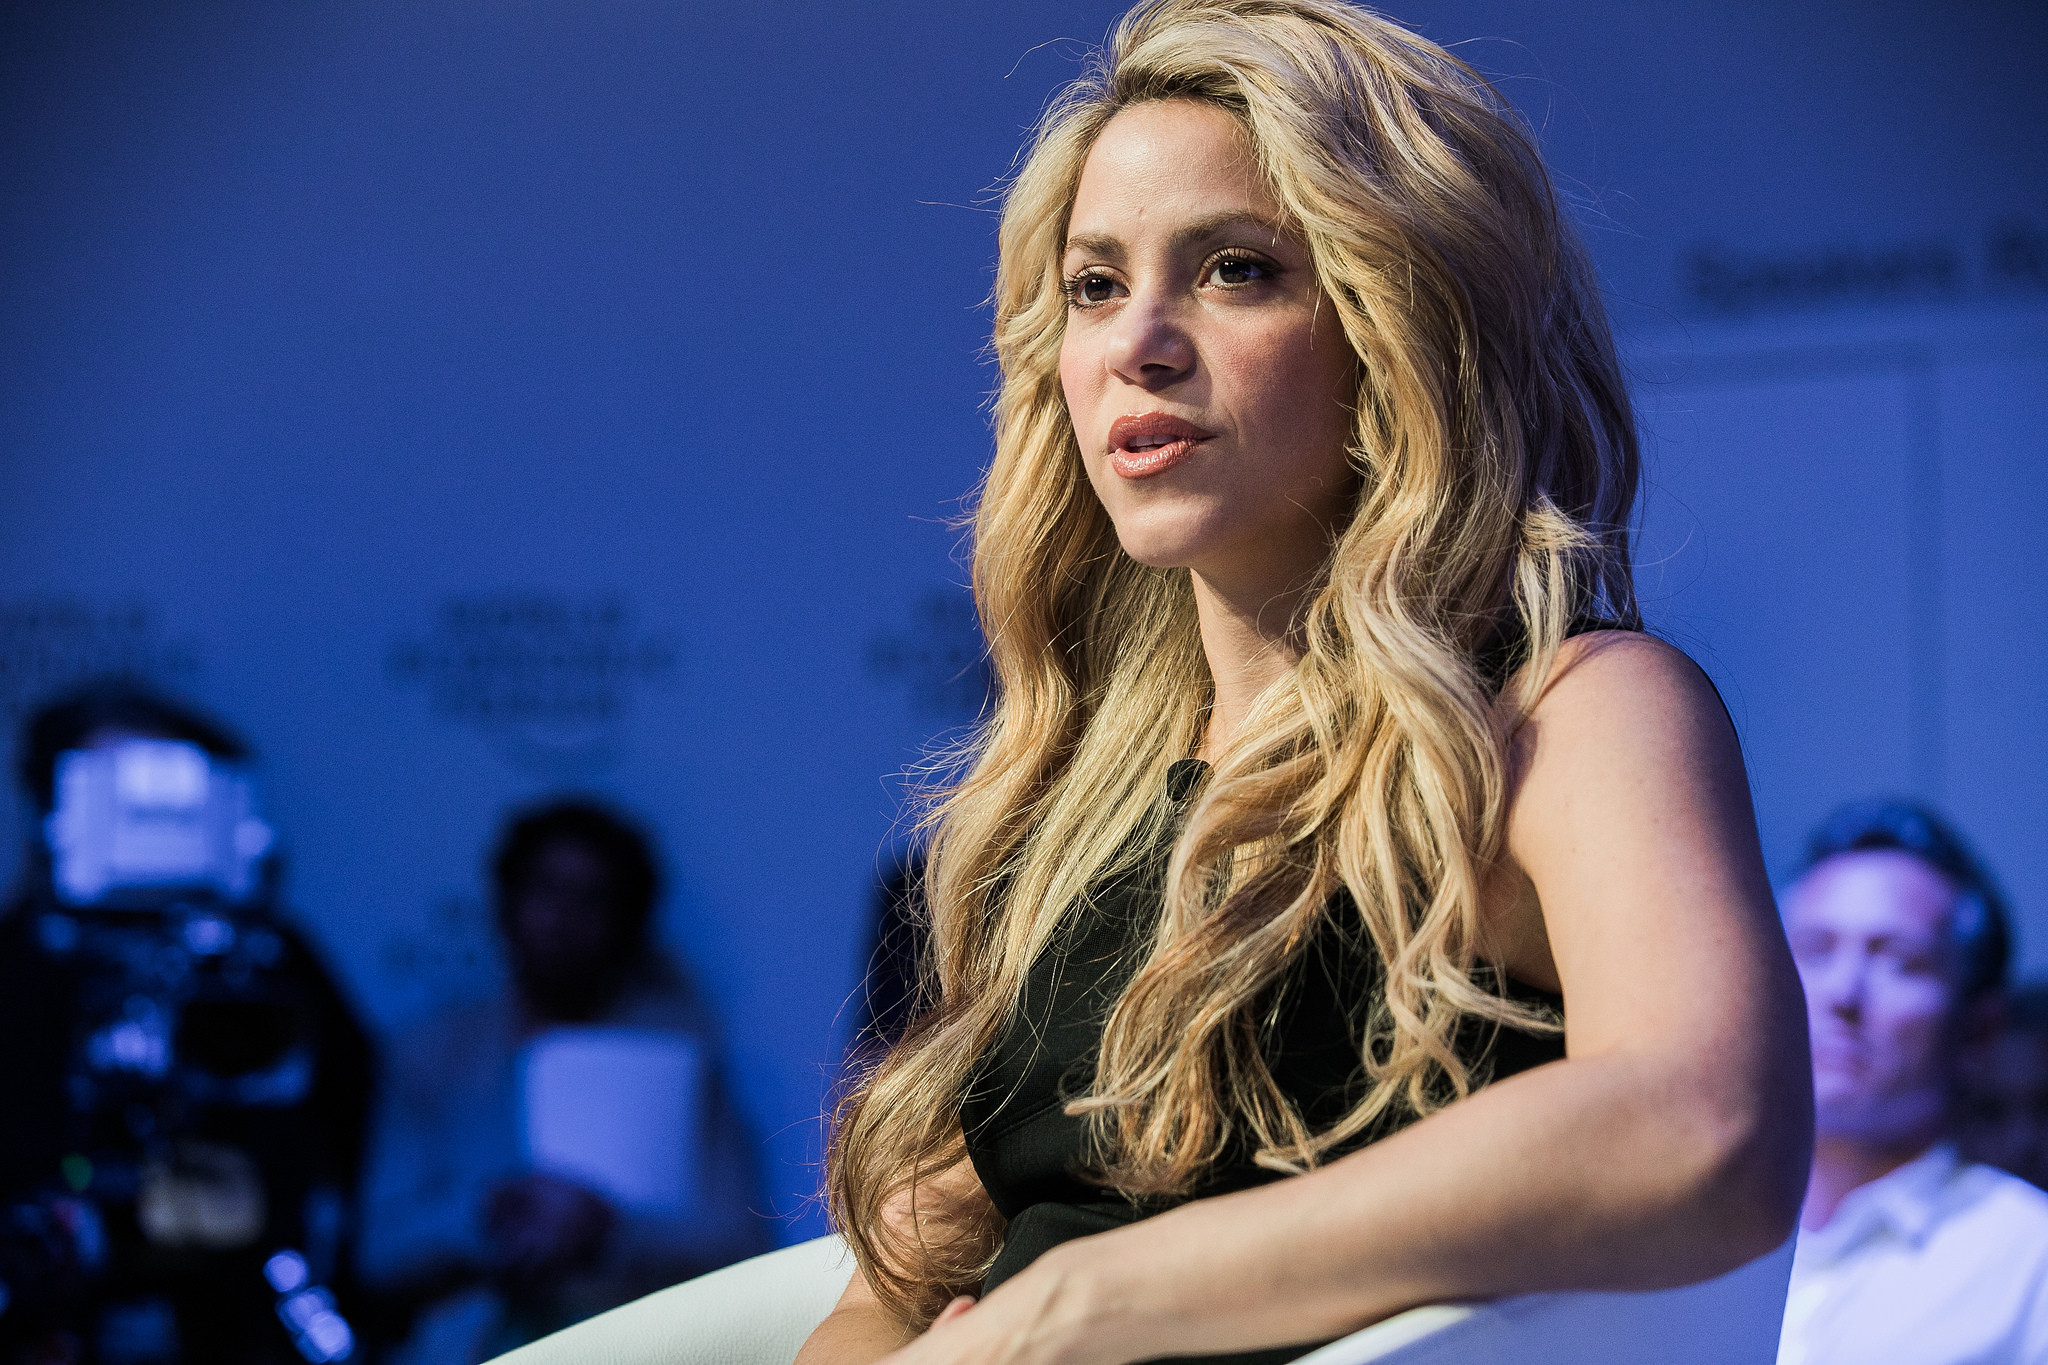 Shakira, UNICEF Global Ambassador, speaks during a session in Davos